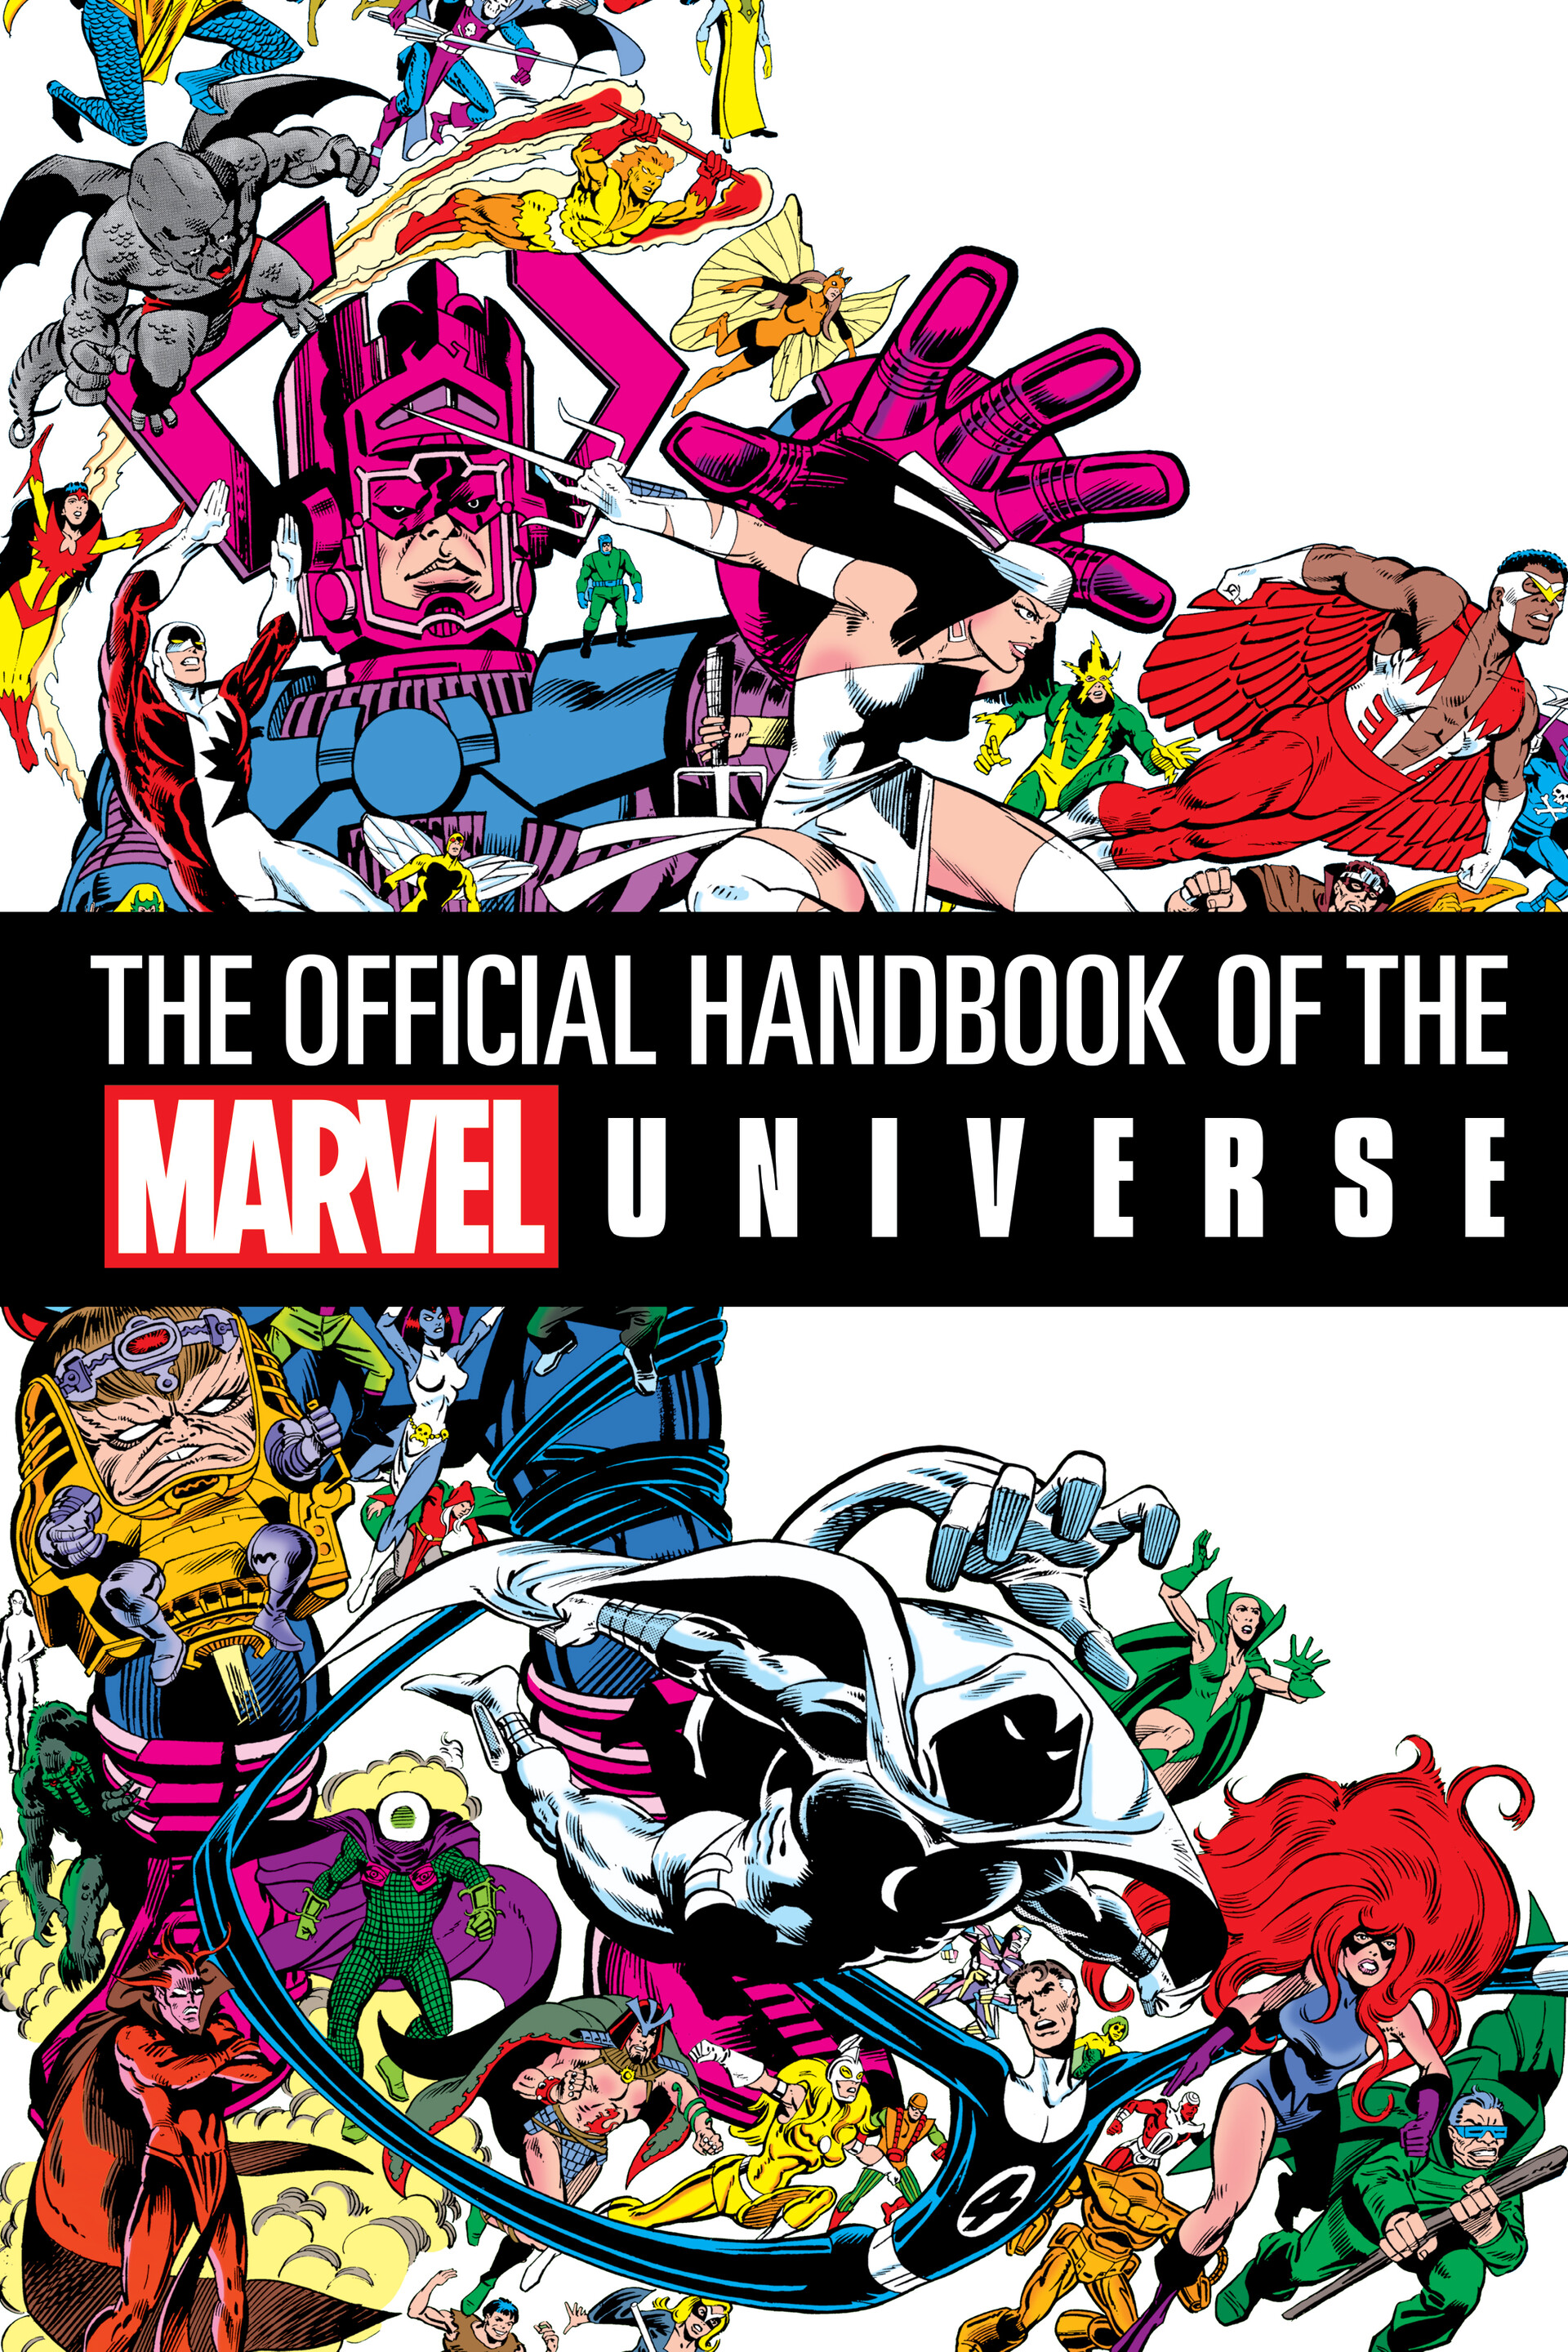 The Official Handbook of the Marvel Universe Half Title Page Design